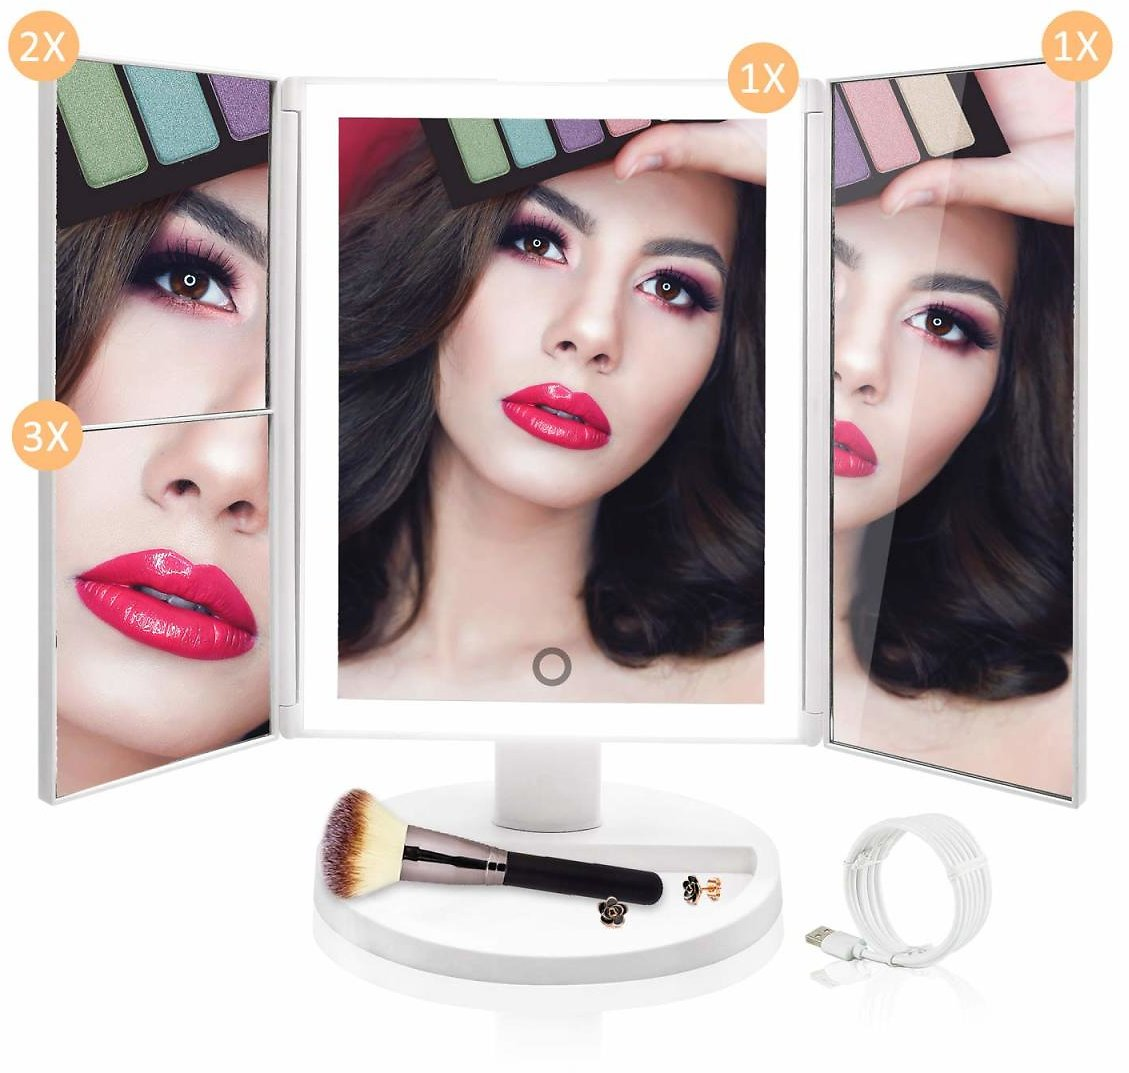 Lighted Vanity Makeup Mirror - Upgraded 36 LED Natural Daylight Trifold Cosmetic Mirror, with HD X1 X2 X3 Magnification, Dimmable Lighting, Dual Power Supply, Best Birthday Gift for Women Teen Girls : Beauty